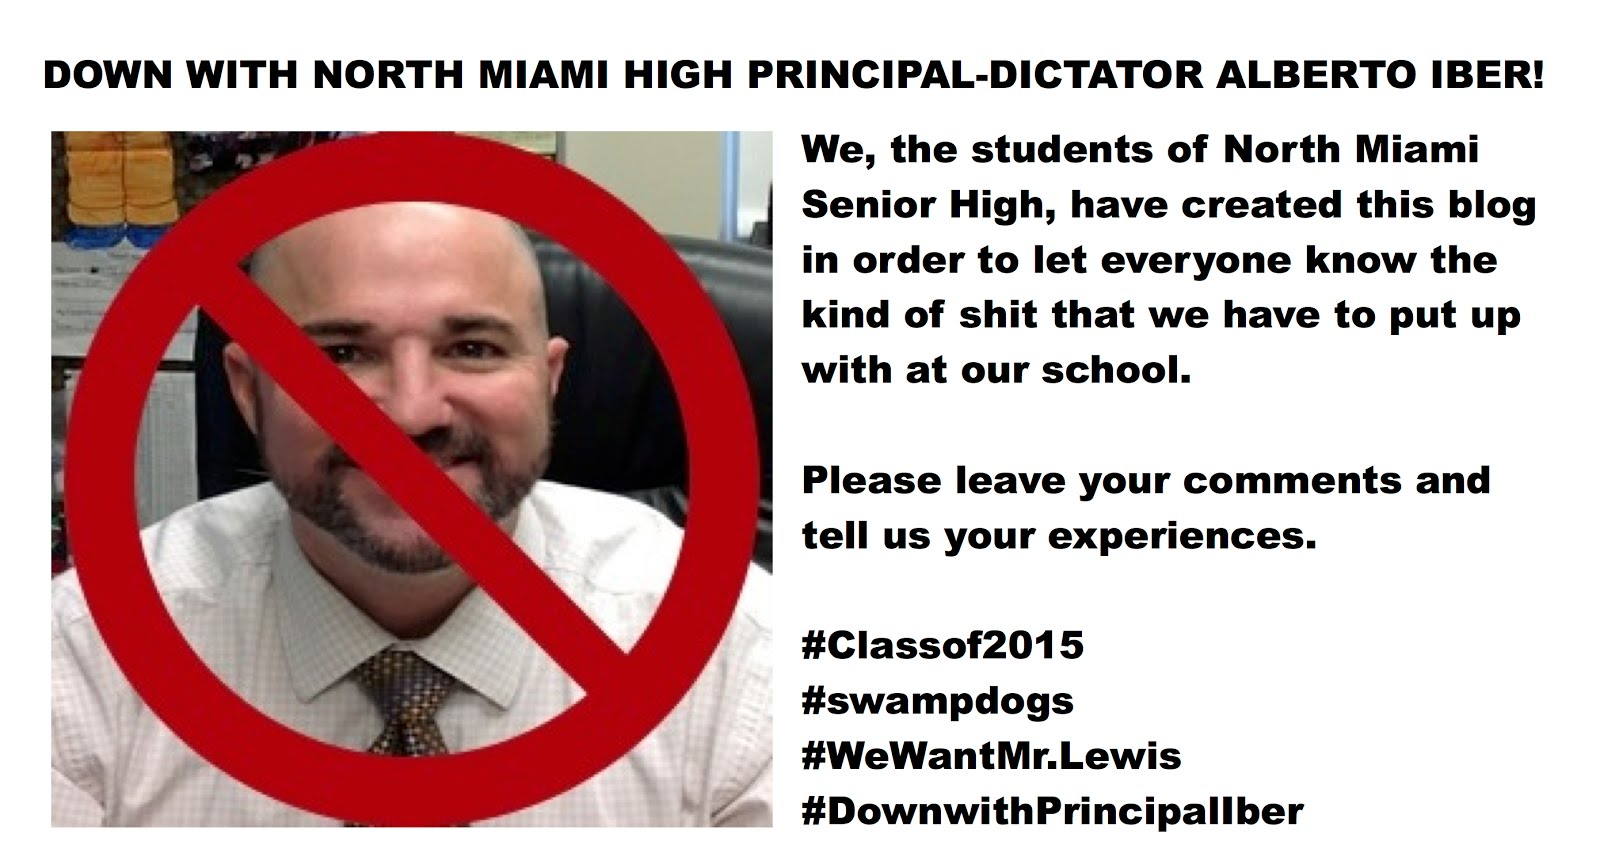 Down with North Miami High Principal-Dictator Alberto Iber